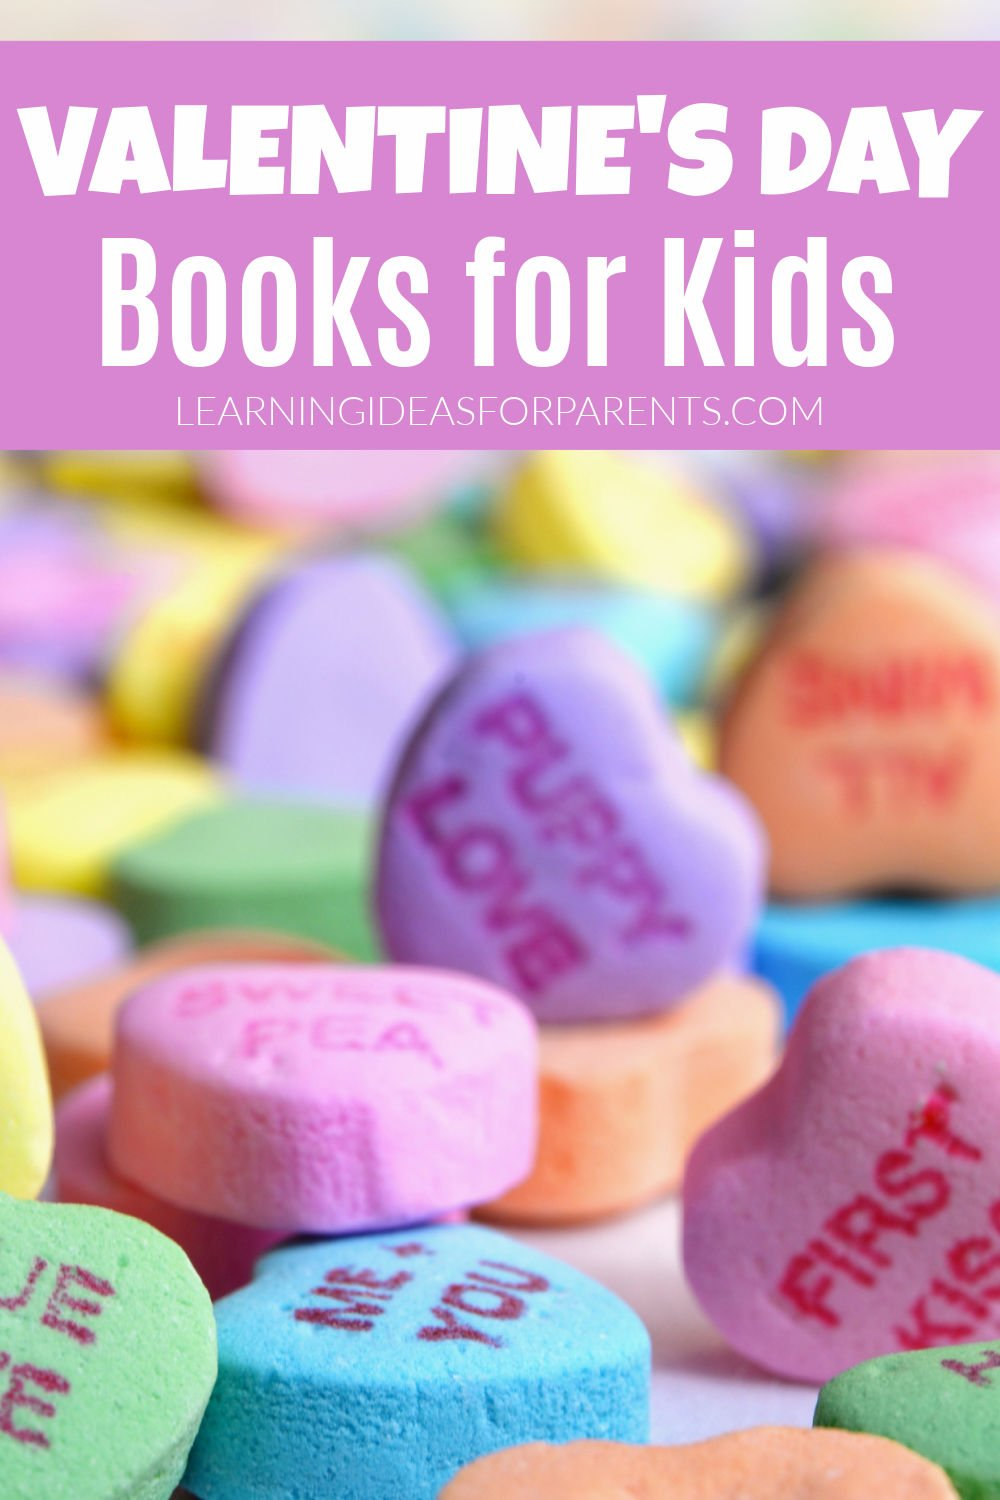 Fun list of Valentine's Day books for kids of all ages.